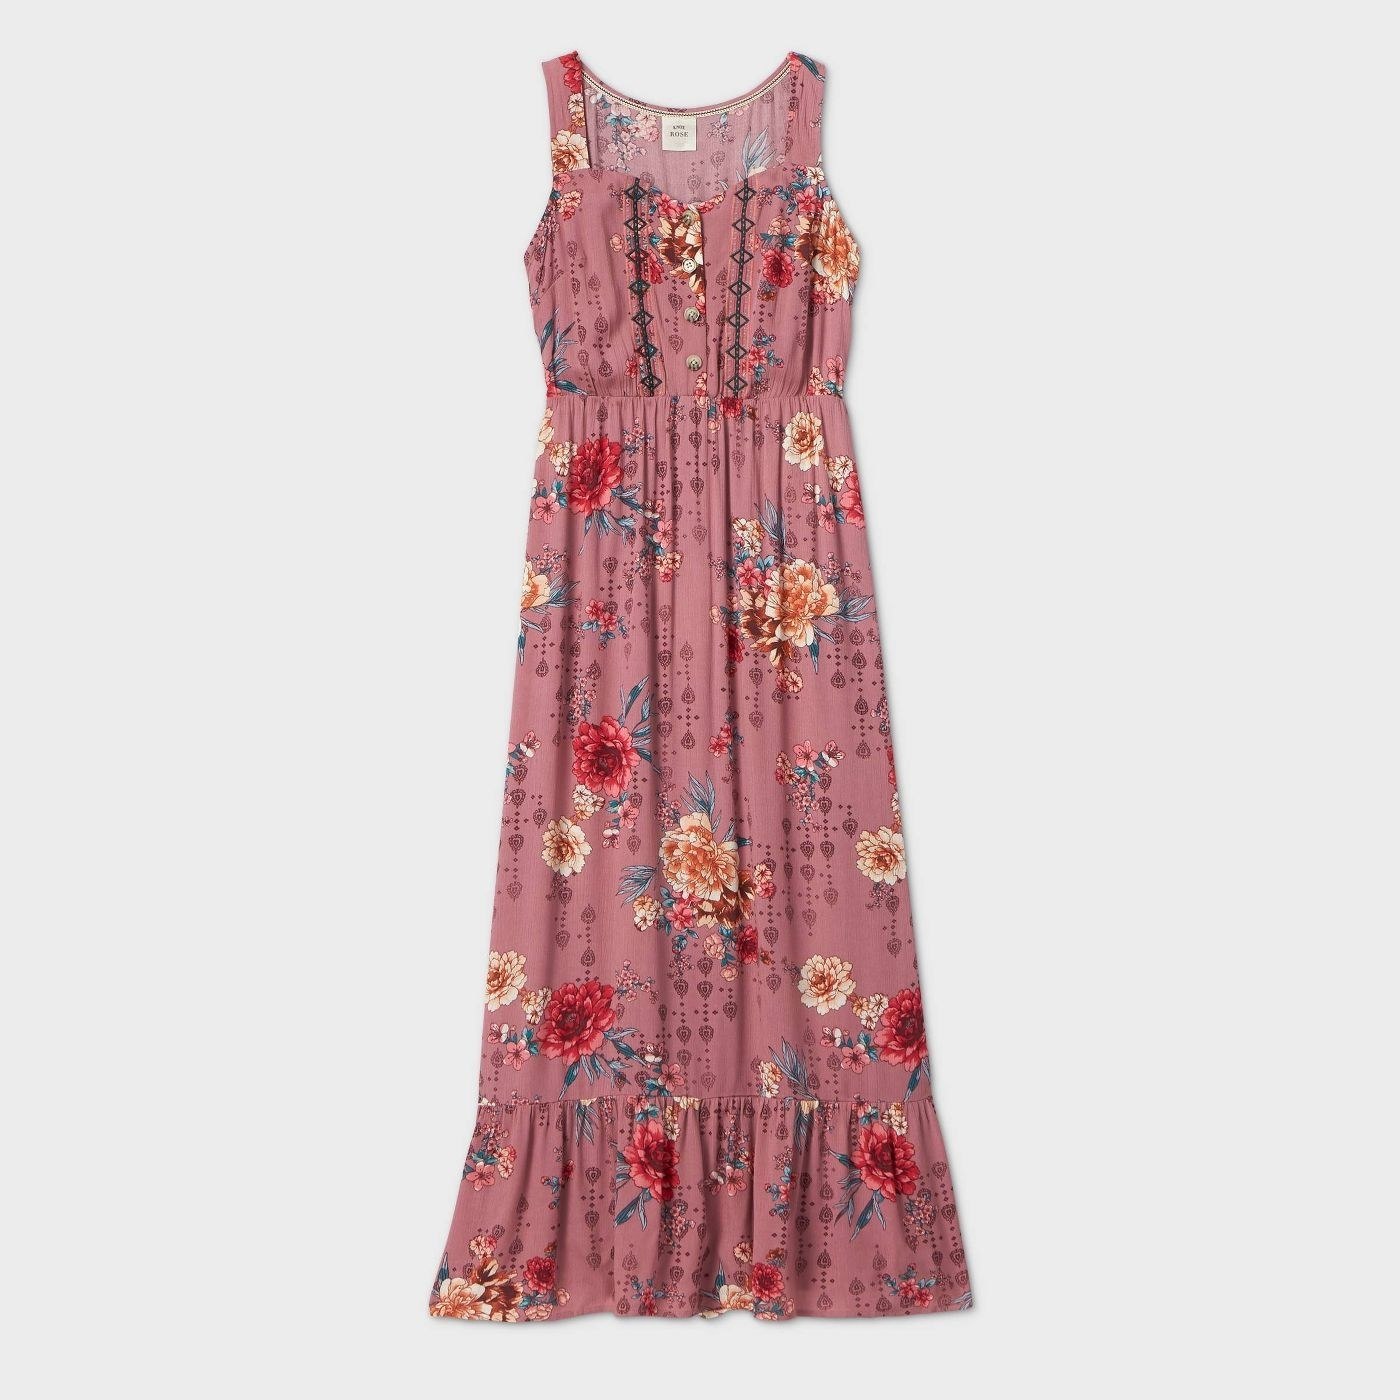 A pink floral sleeveless maxi with a ruffled hem and buttons on the chest